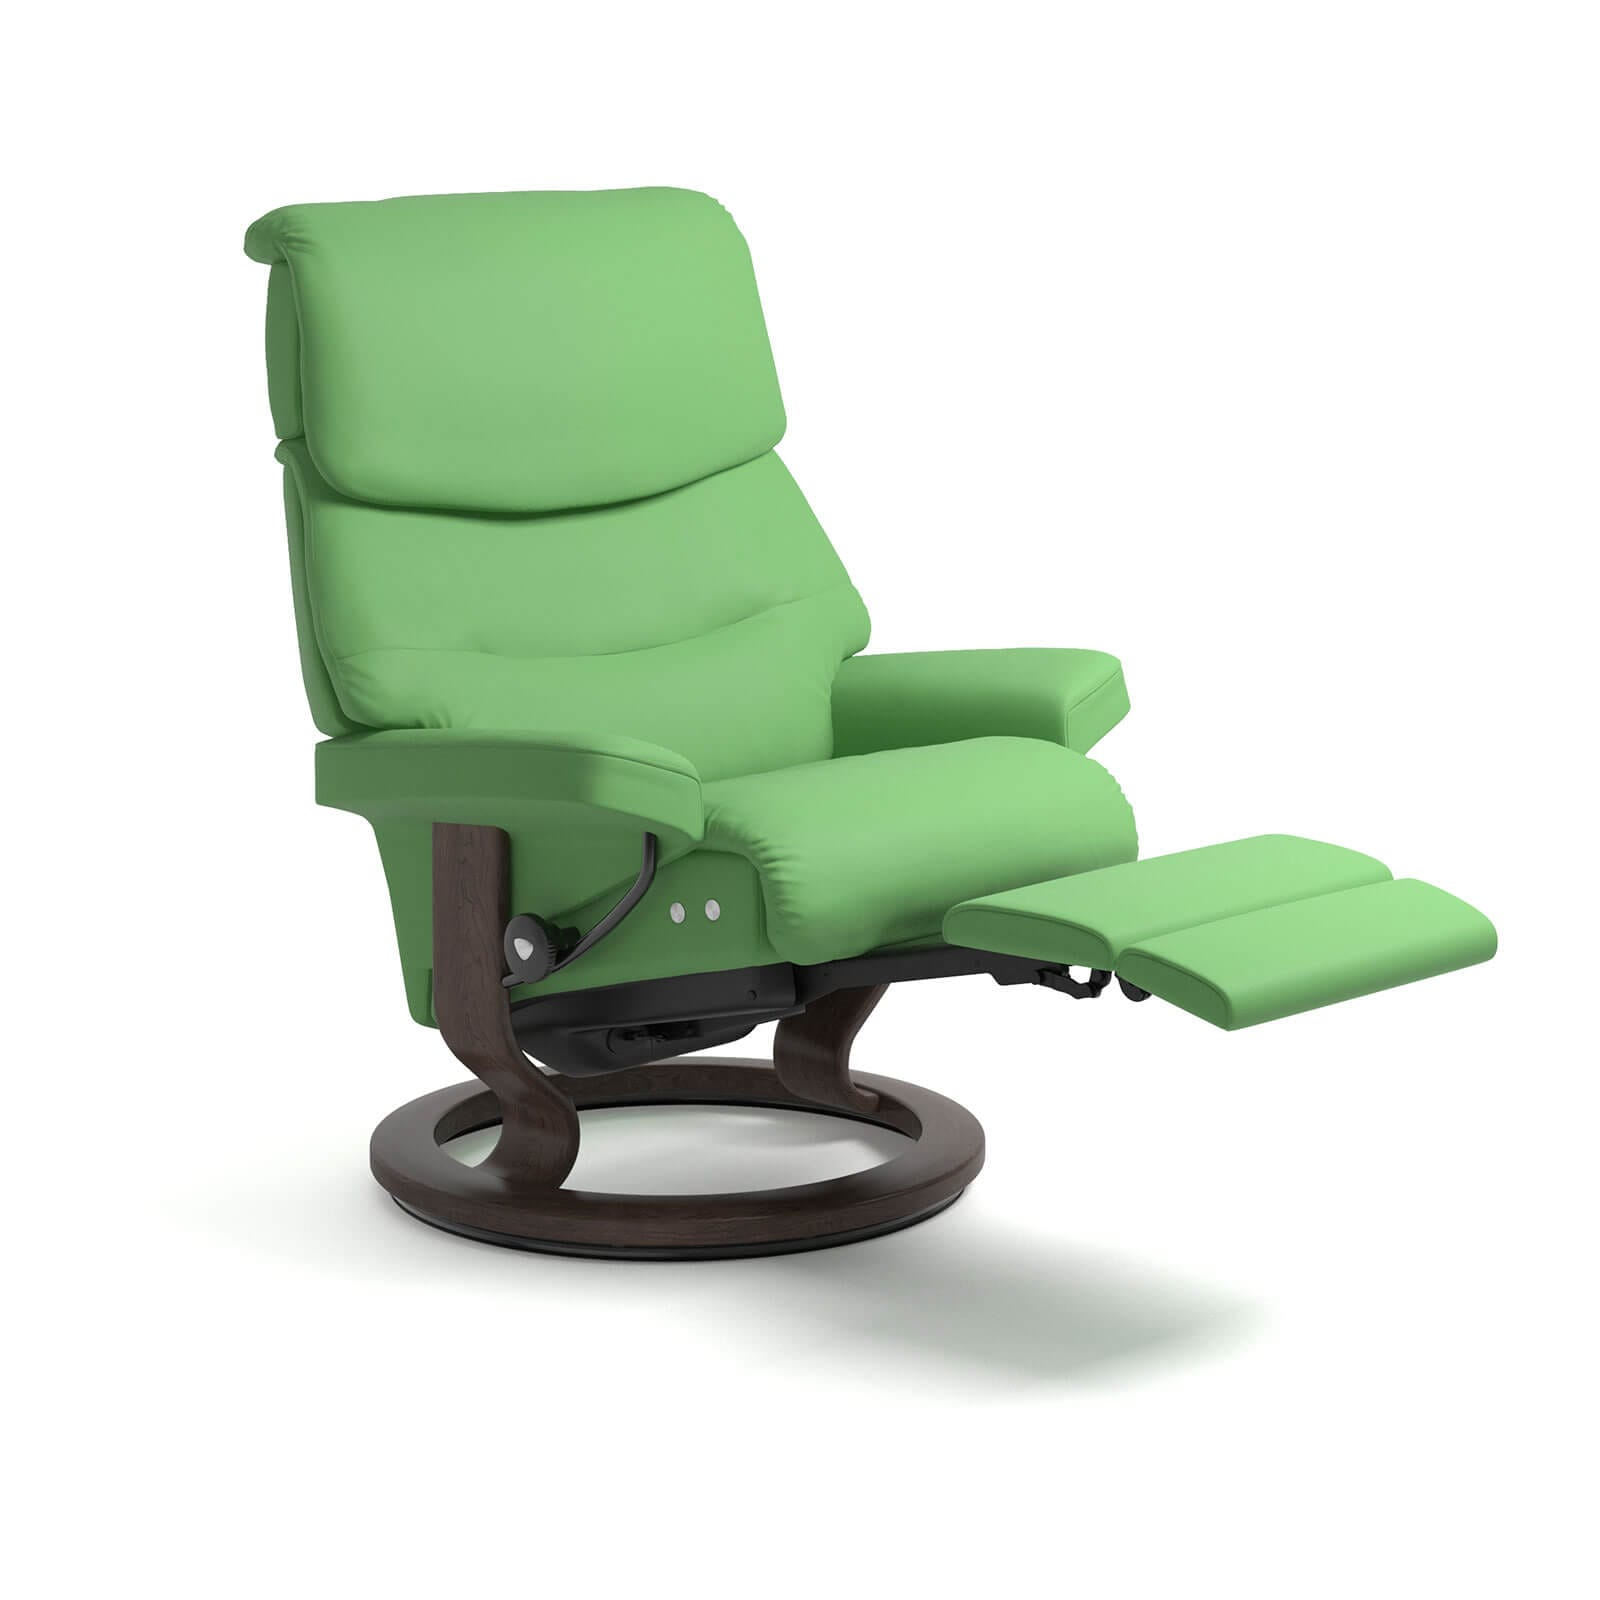 Summer Casual Geflecht Relax-sessel Stressless Capri Legcomfort Paloma Summer Green Stressless